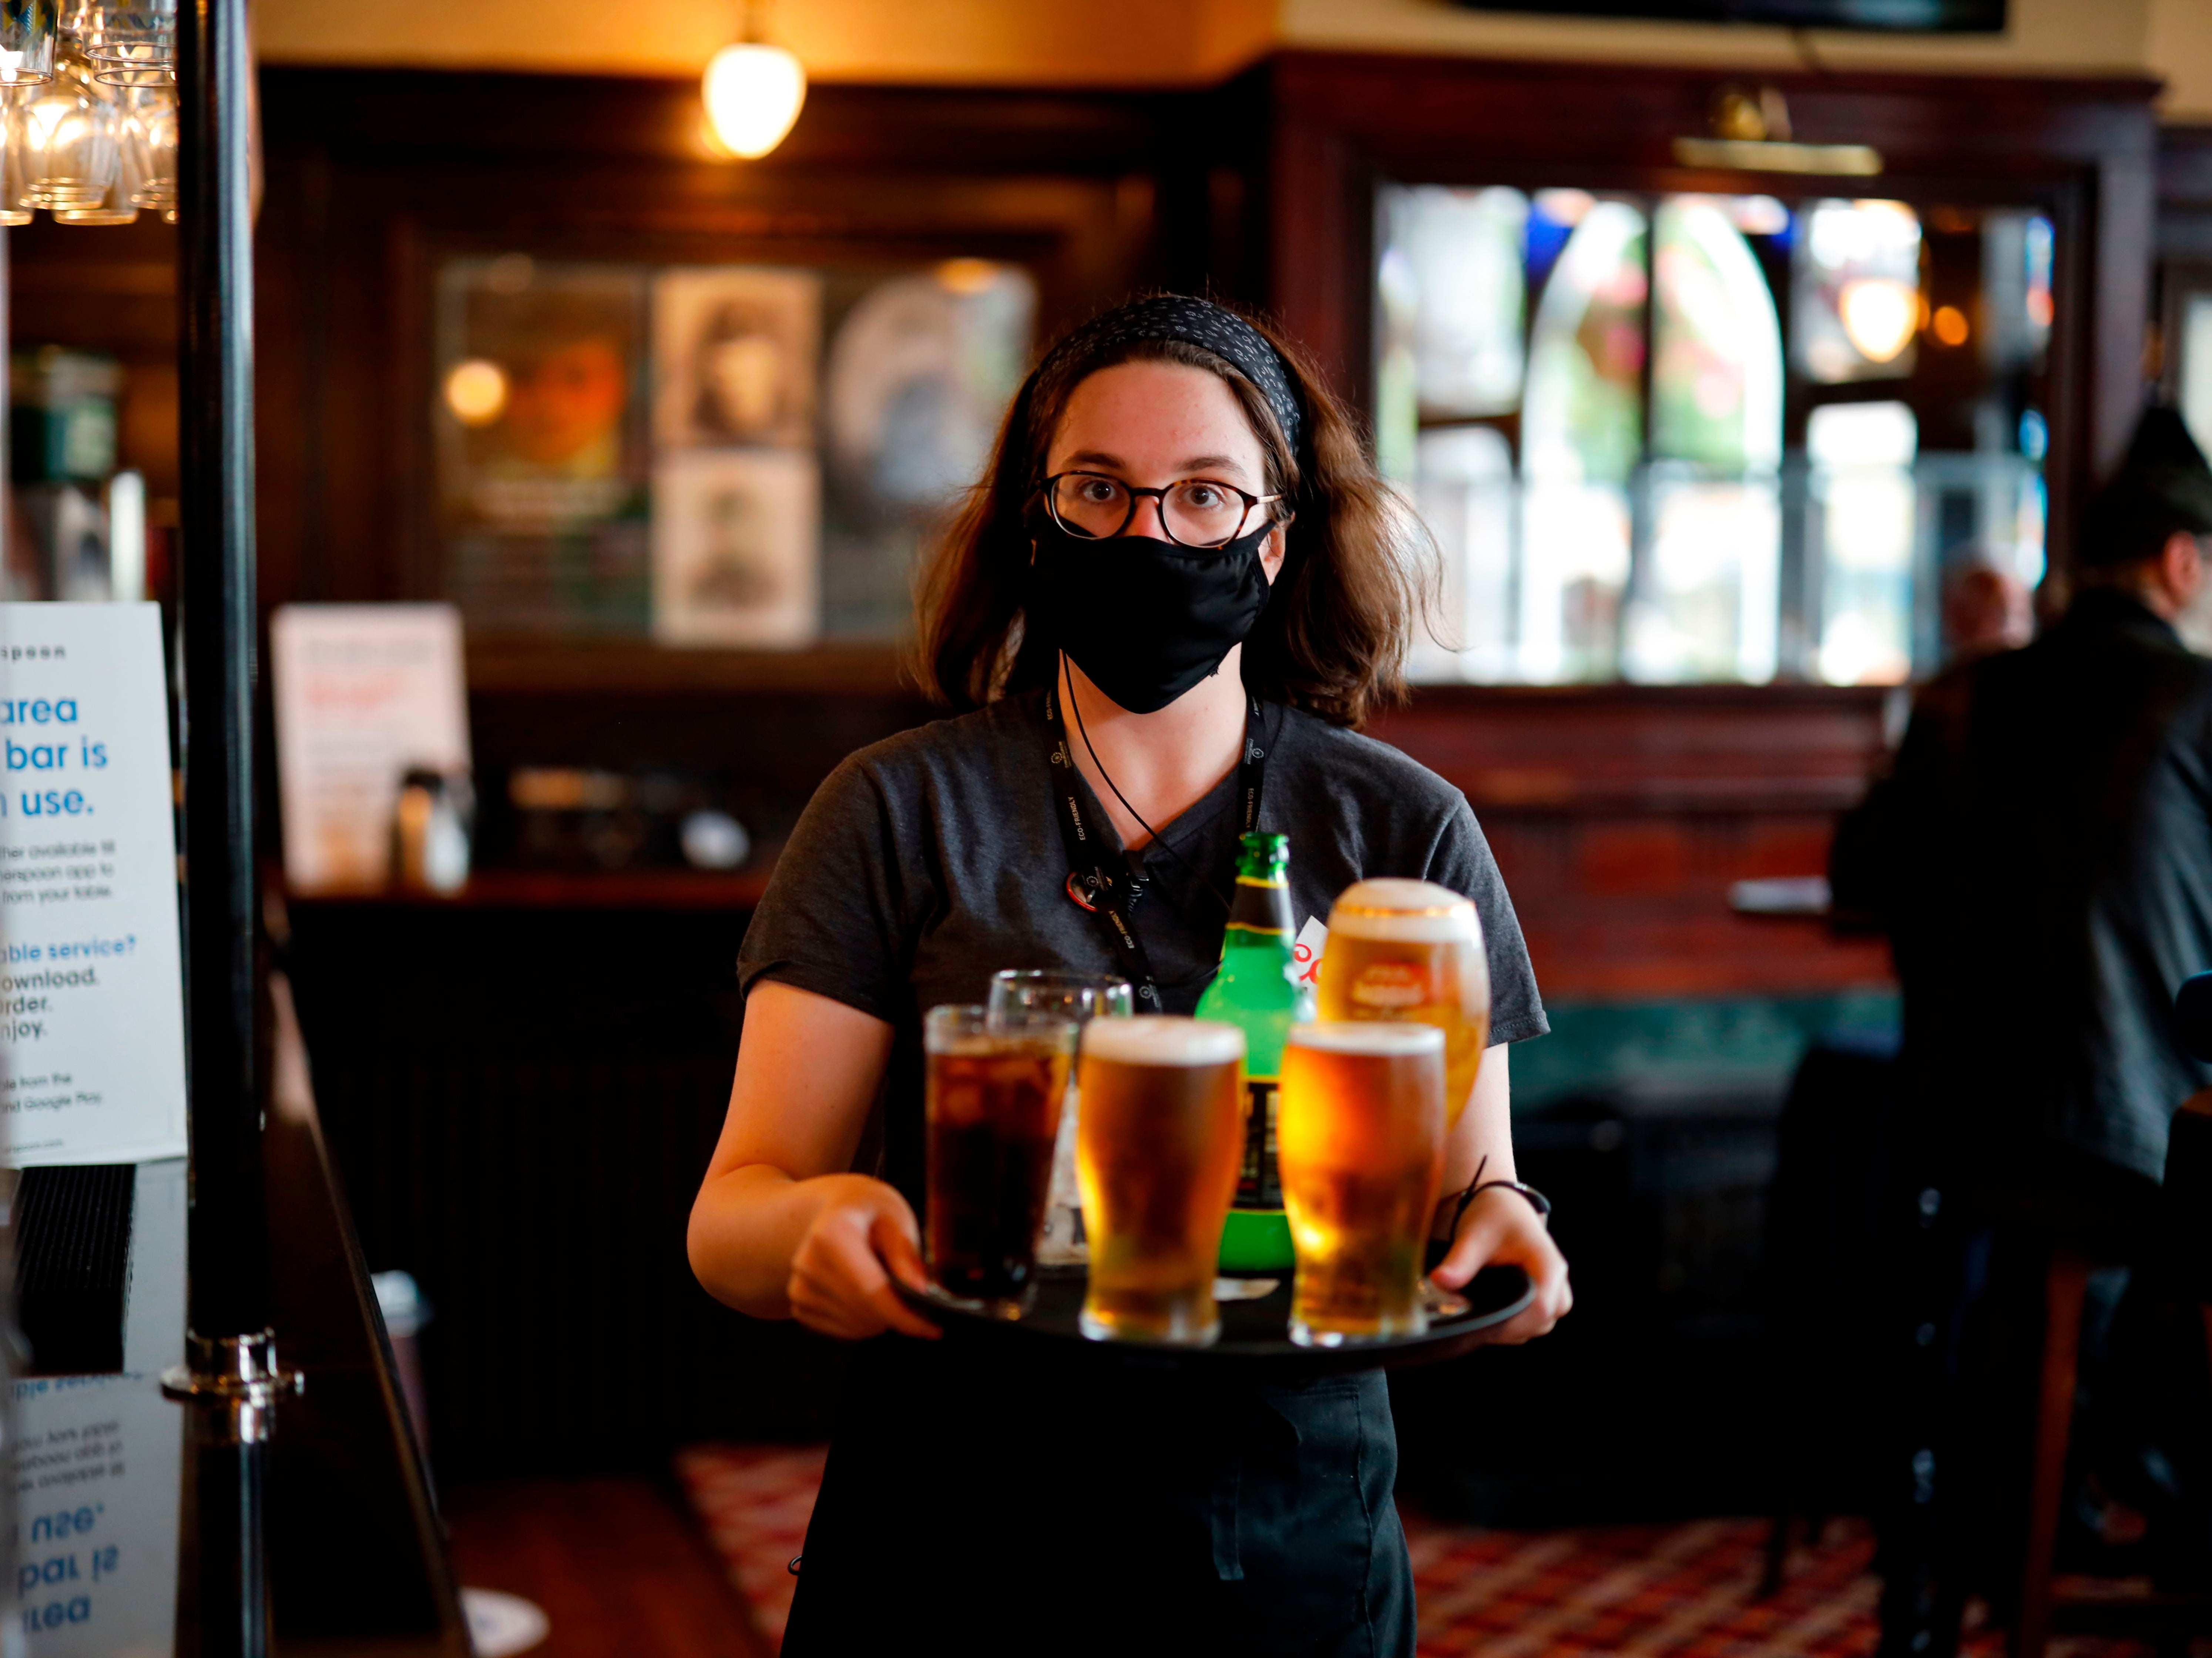 Three Tier Lockdown What Are The New Rules For Pubs And Bars In England The Independent